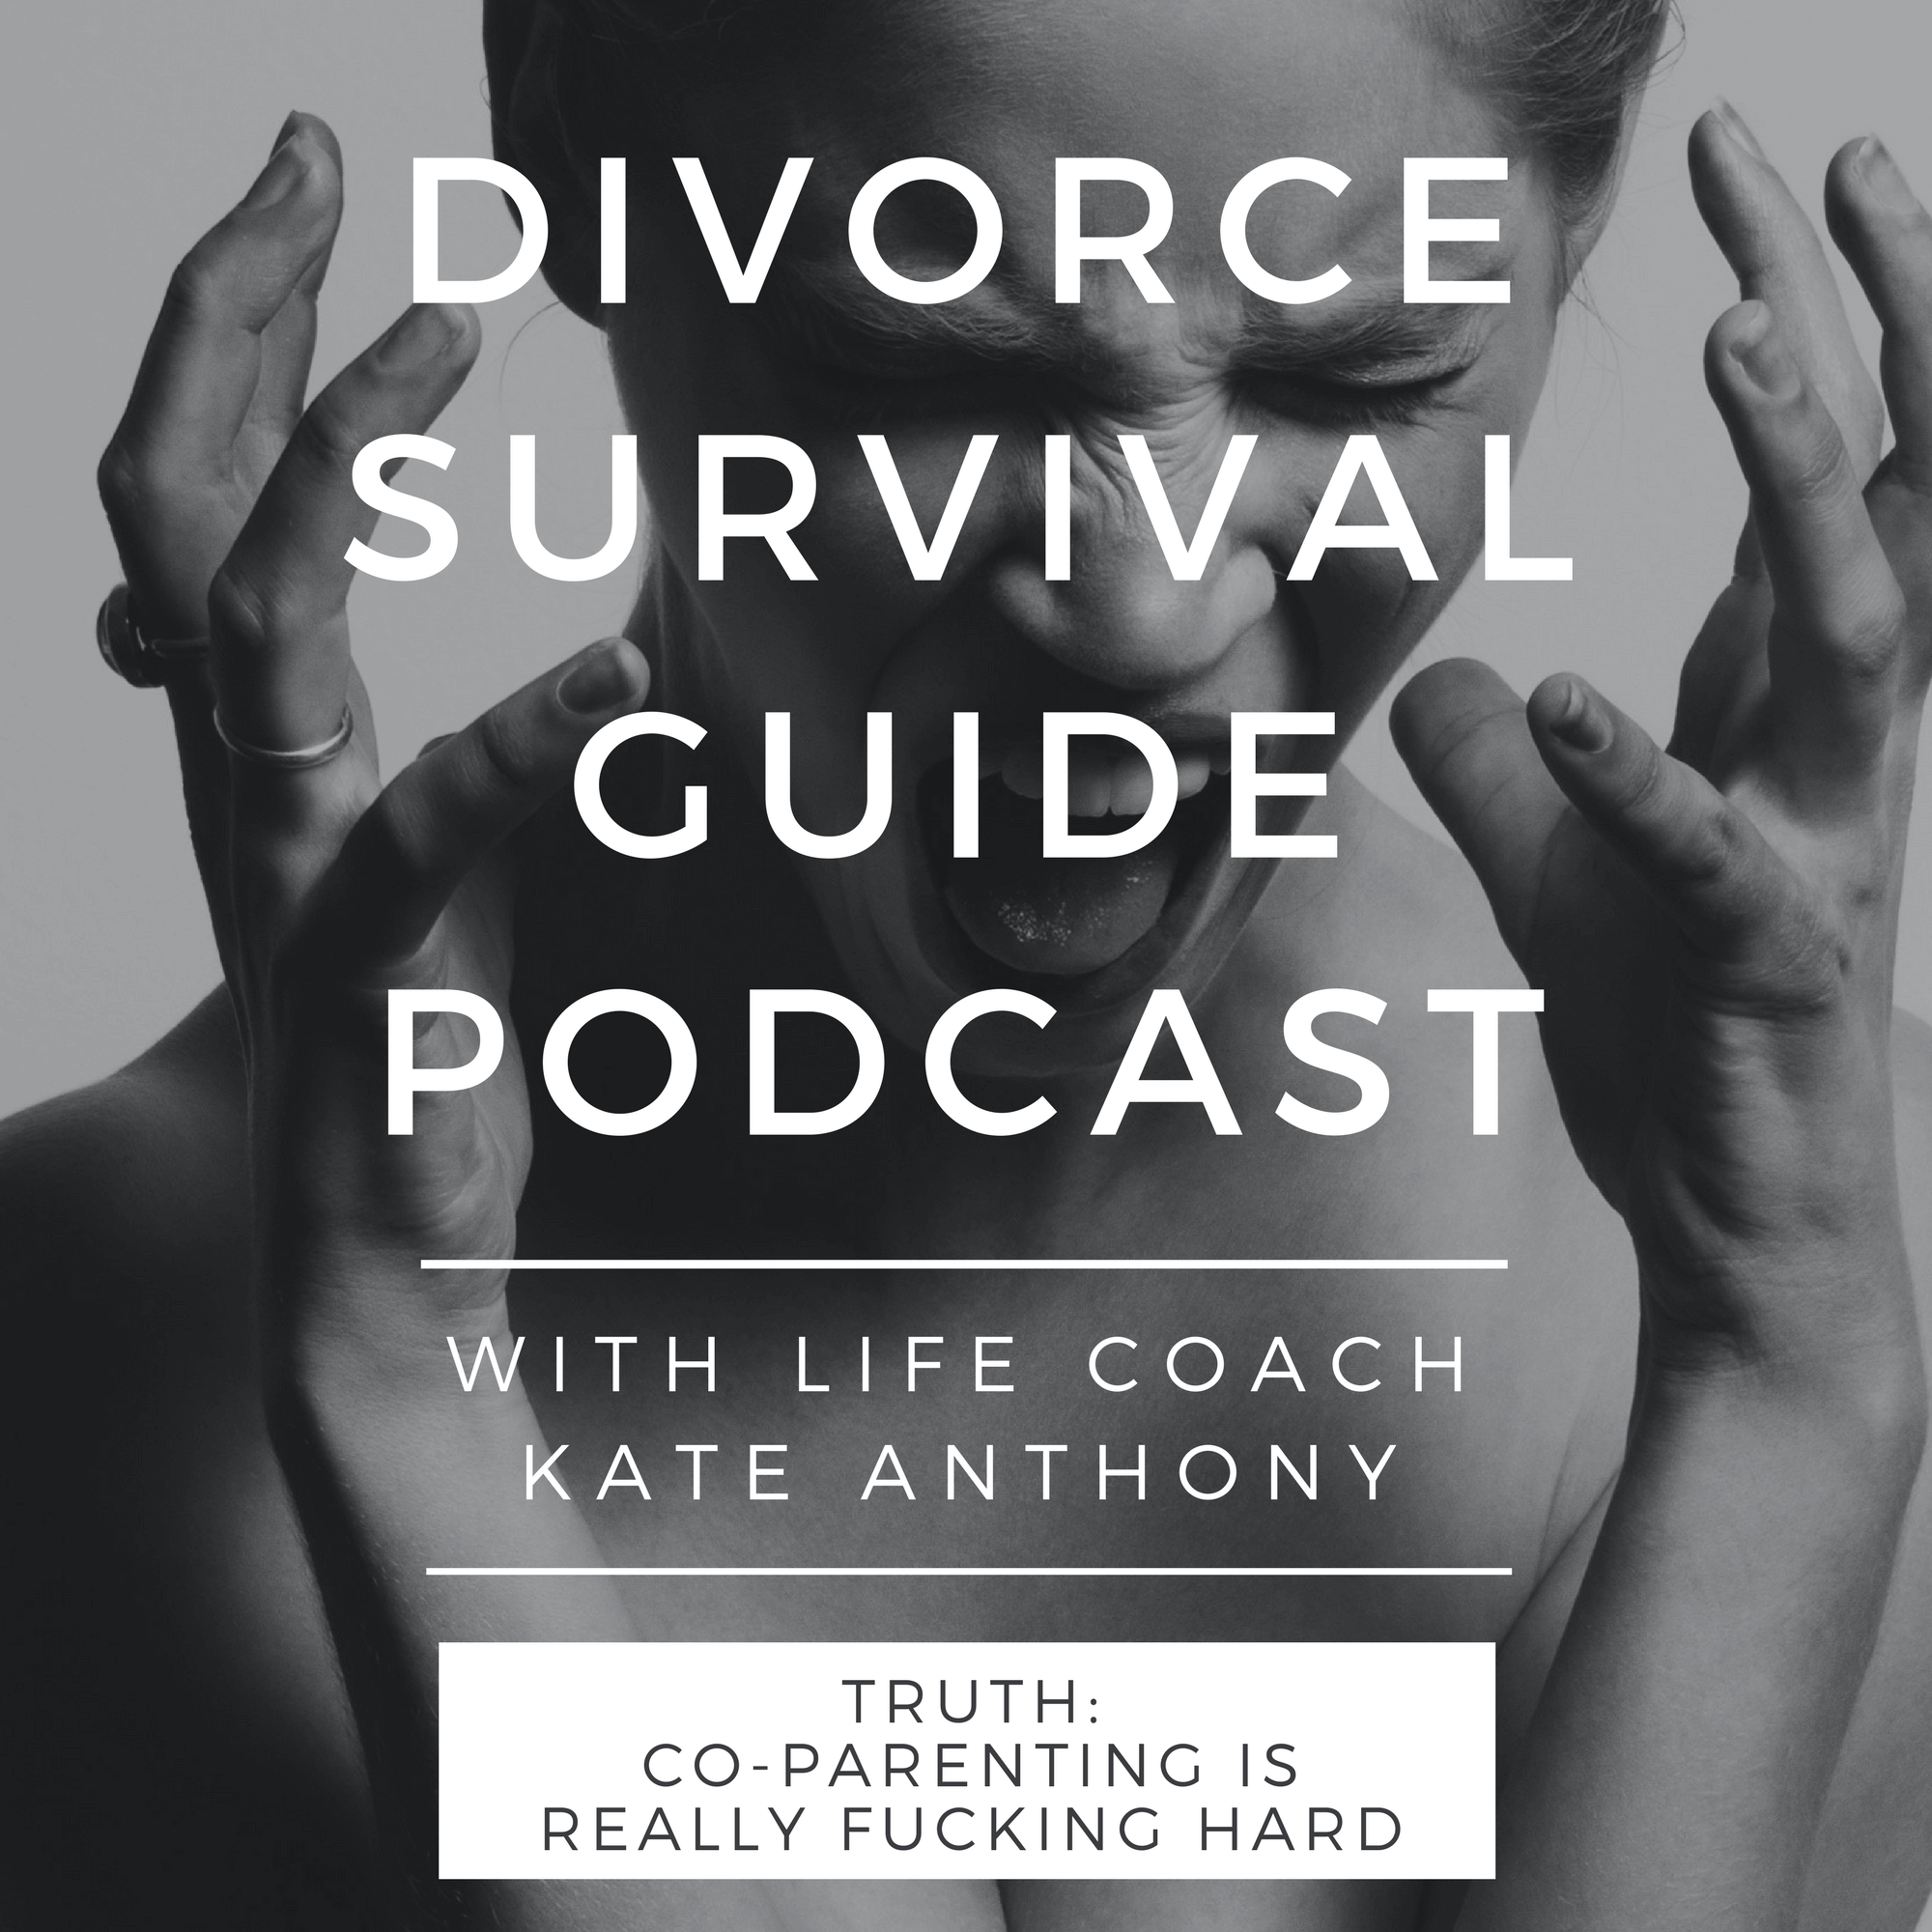 The Divorce Survival Guide Podcast - TRUTH: Co-Parenting is Really F*cking Hard